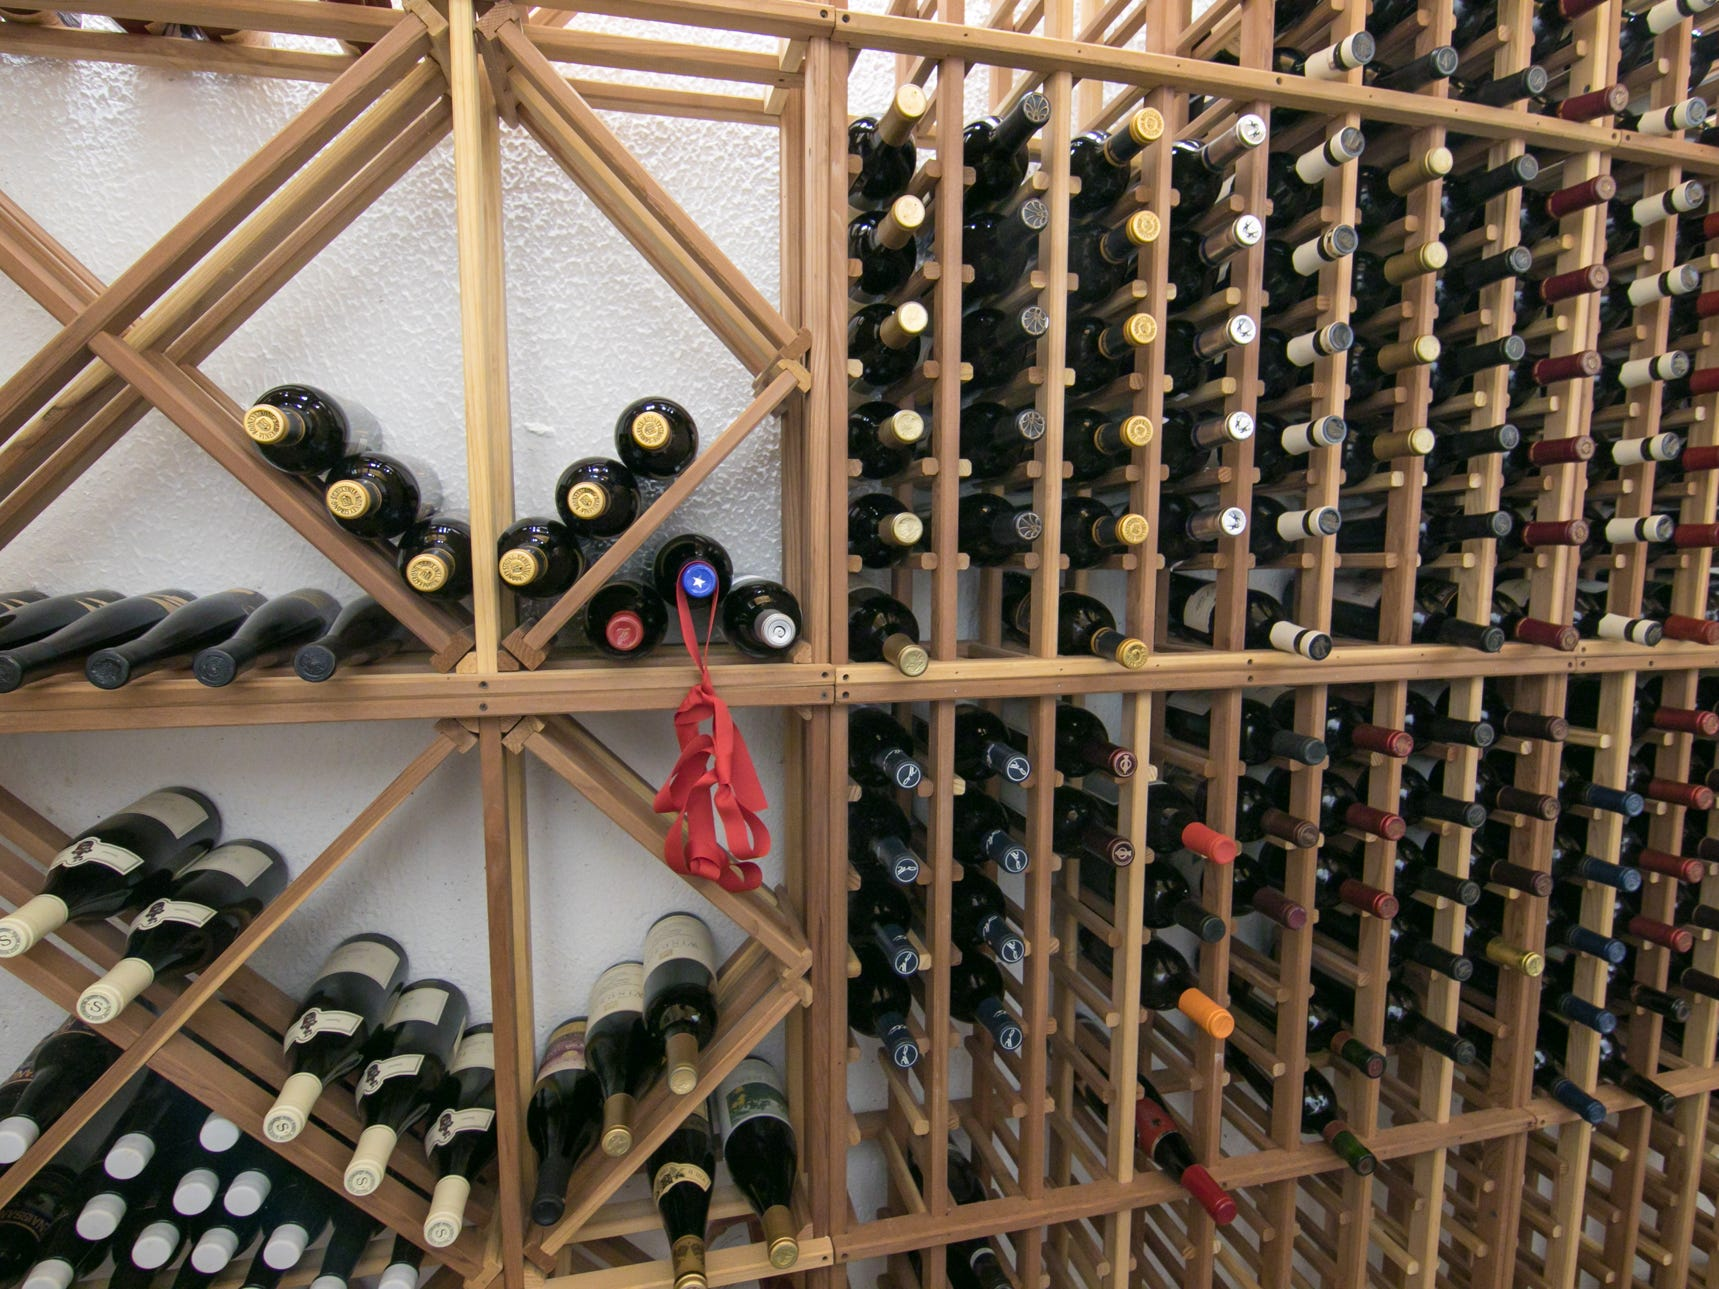 The wine cellar of the Cross Creek home in Green Oak Township, shown Thursday, Jan. 17, 2019, is stocked with fine wines.